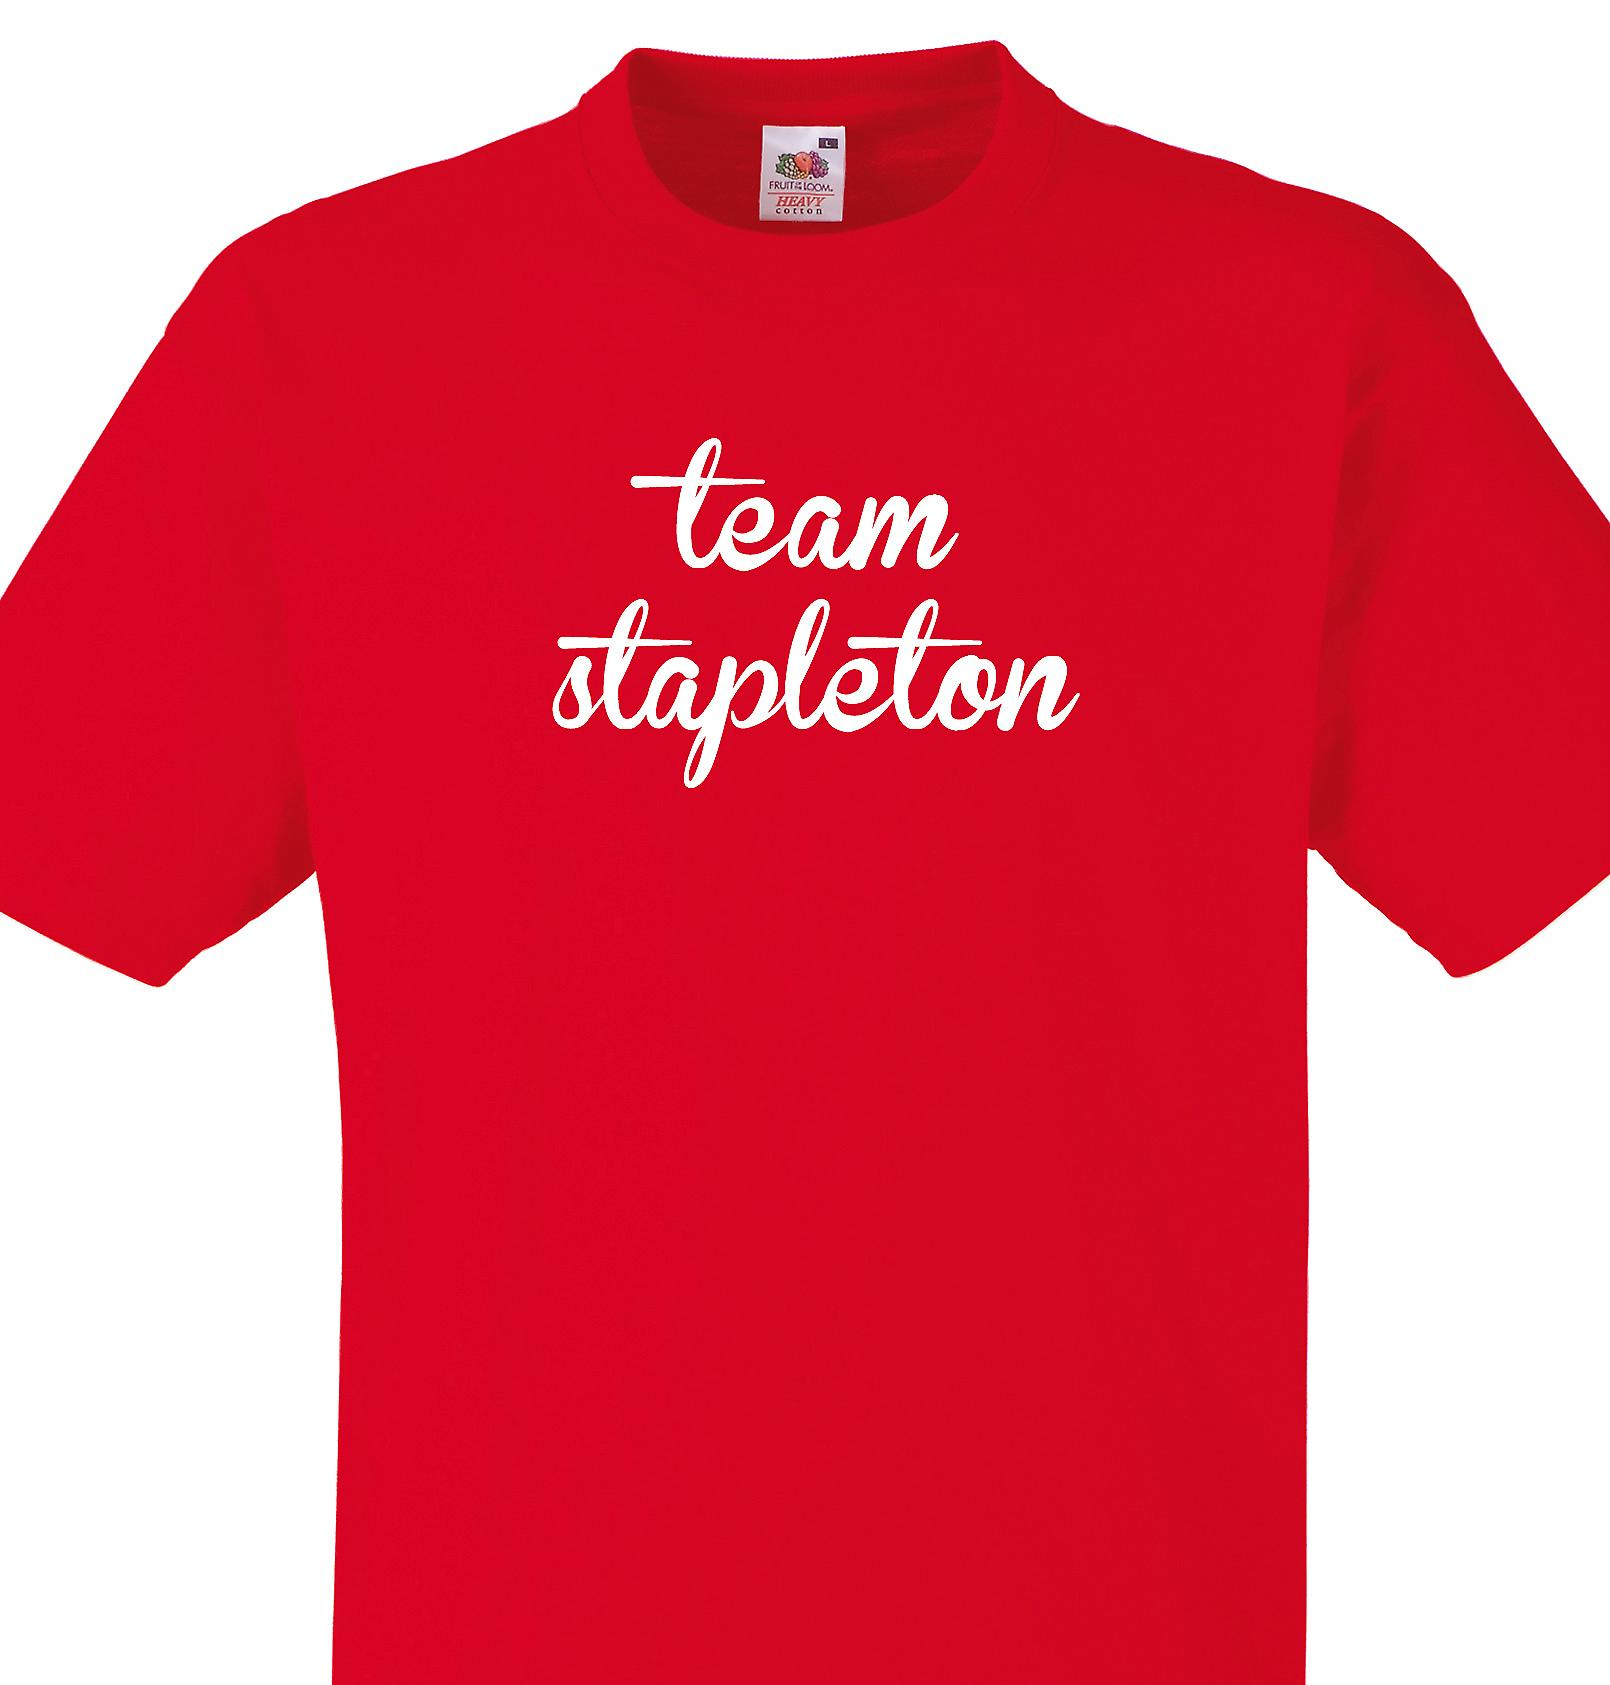 Team Stapleton Red T shirt